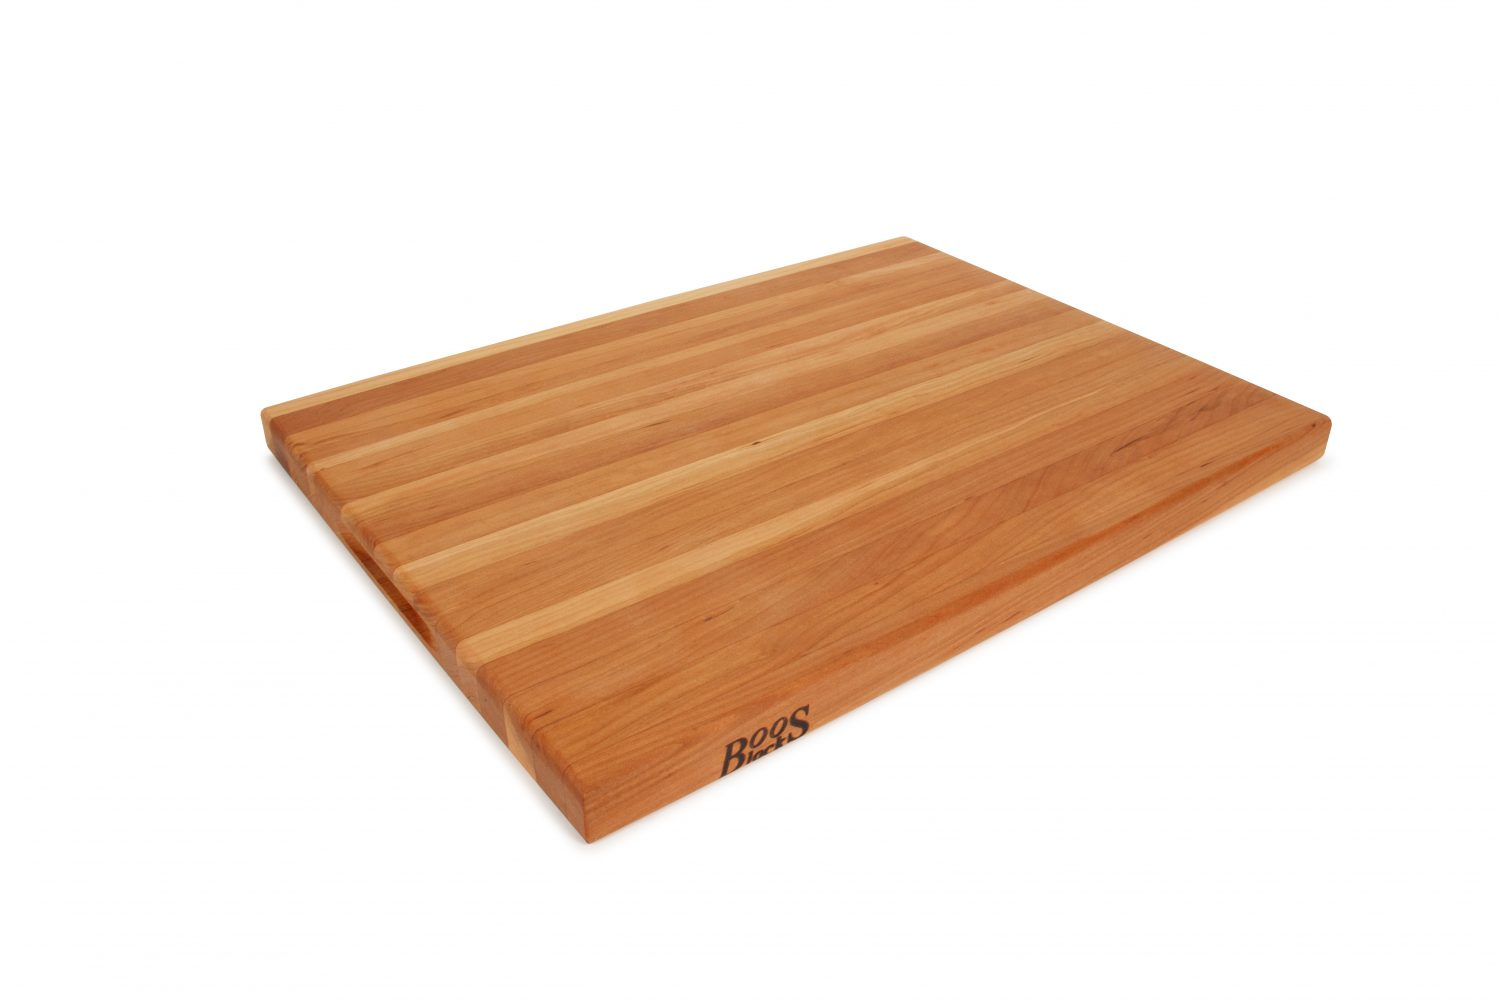 Boos Reversible Cherry Cutting Board Performance Stoneworks